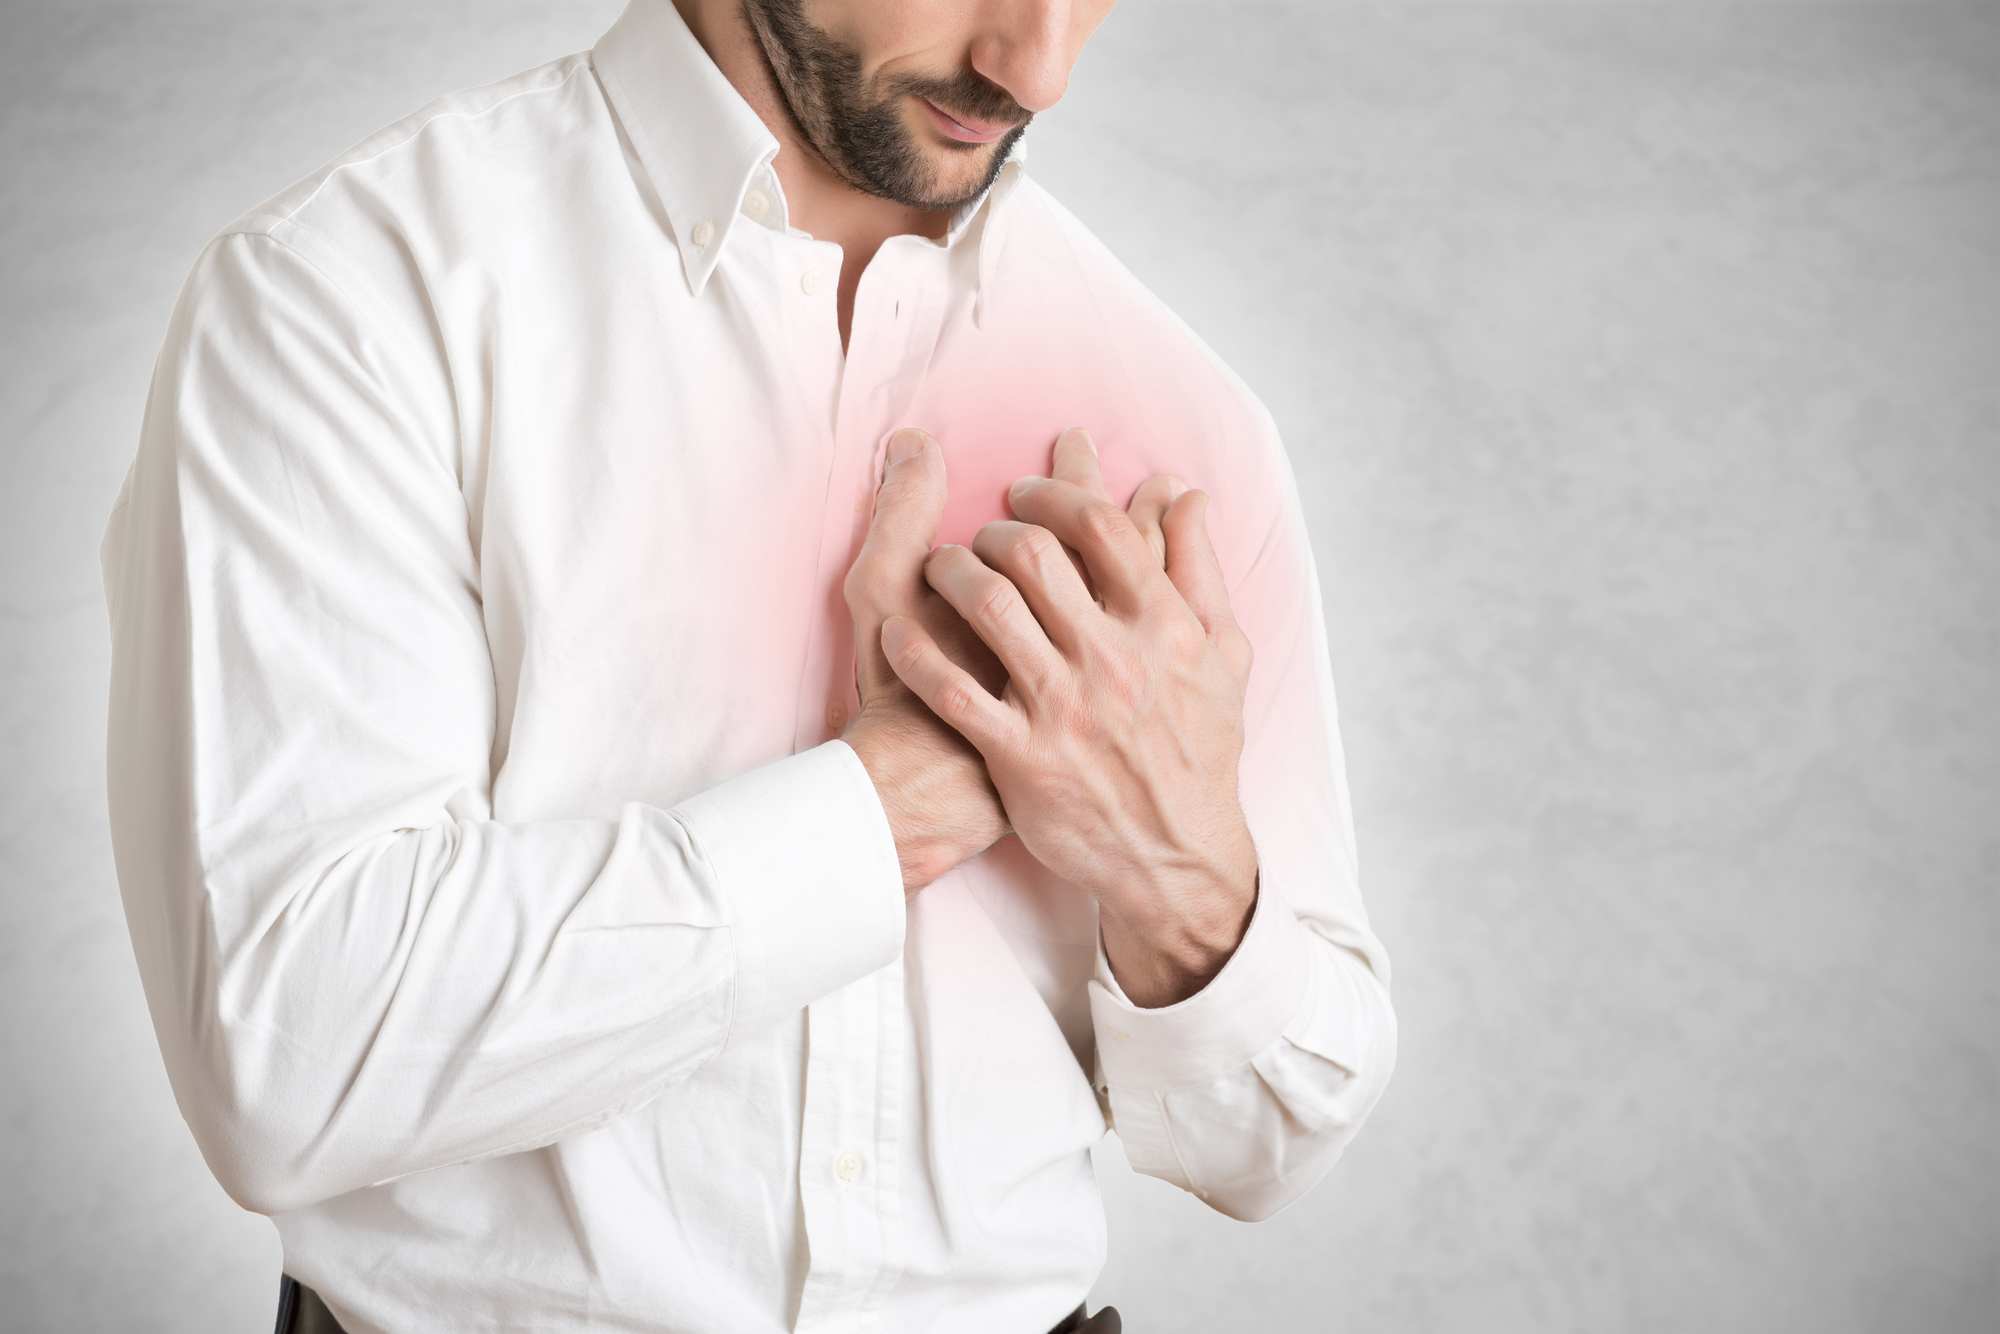 Man having a pain in the heart area, isolated in white, red circle around painful area